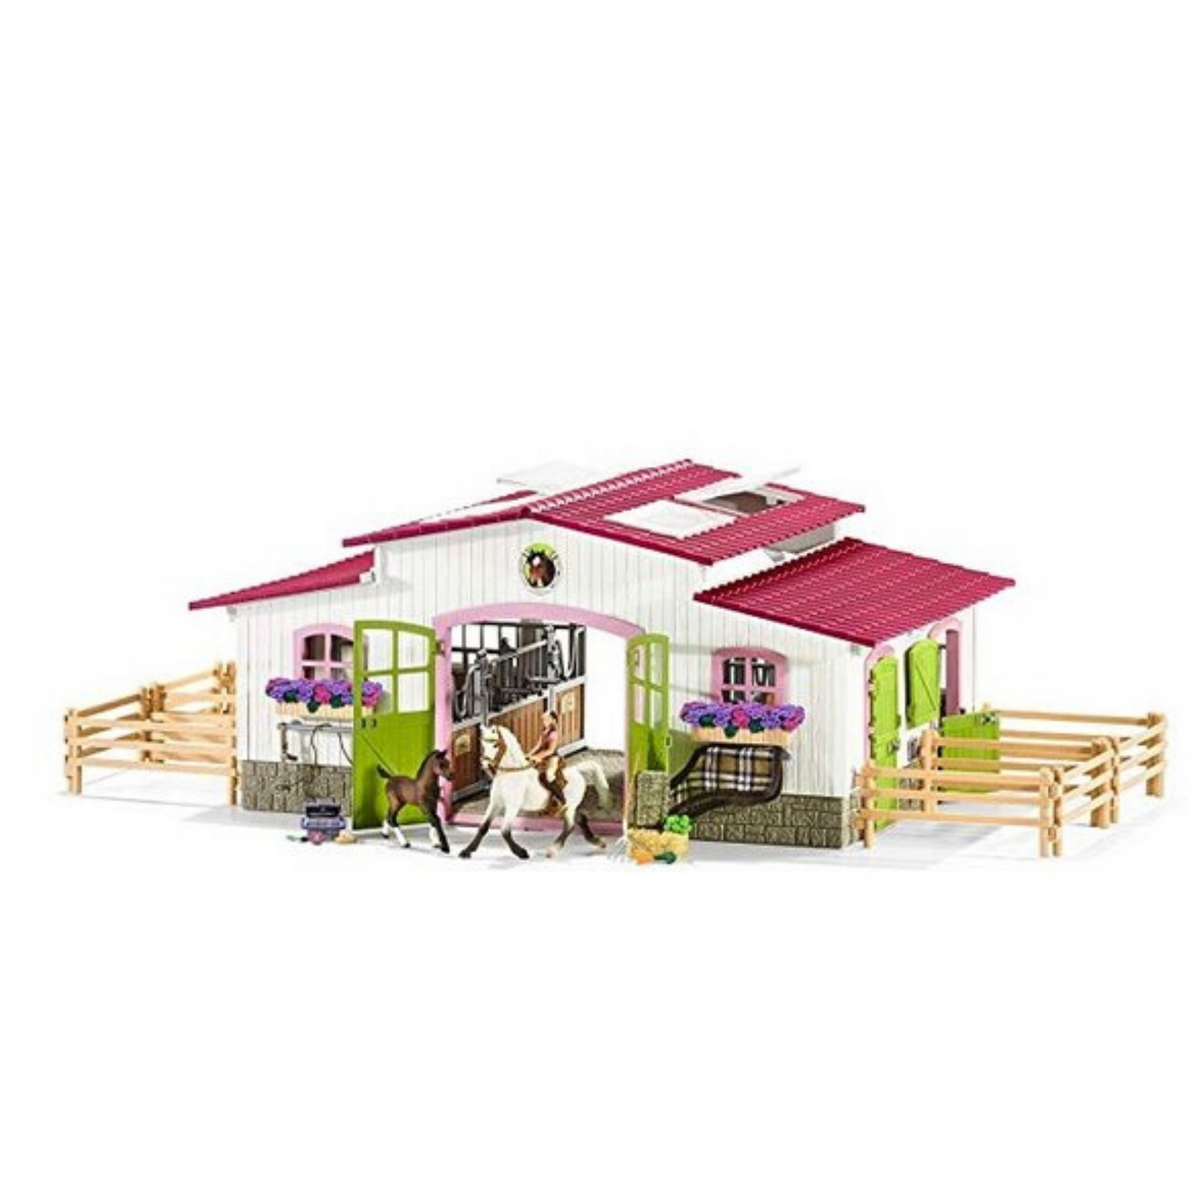 Schleich Riding Centre with Rider, Horses and Accessories